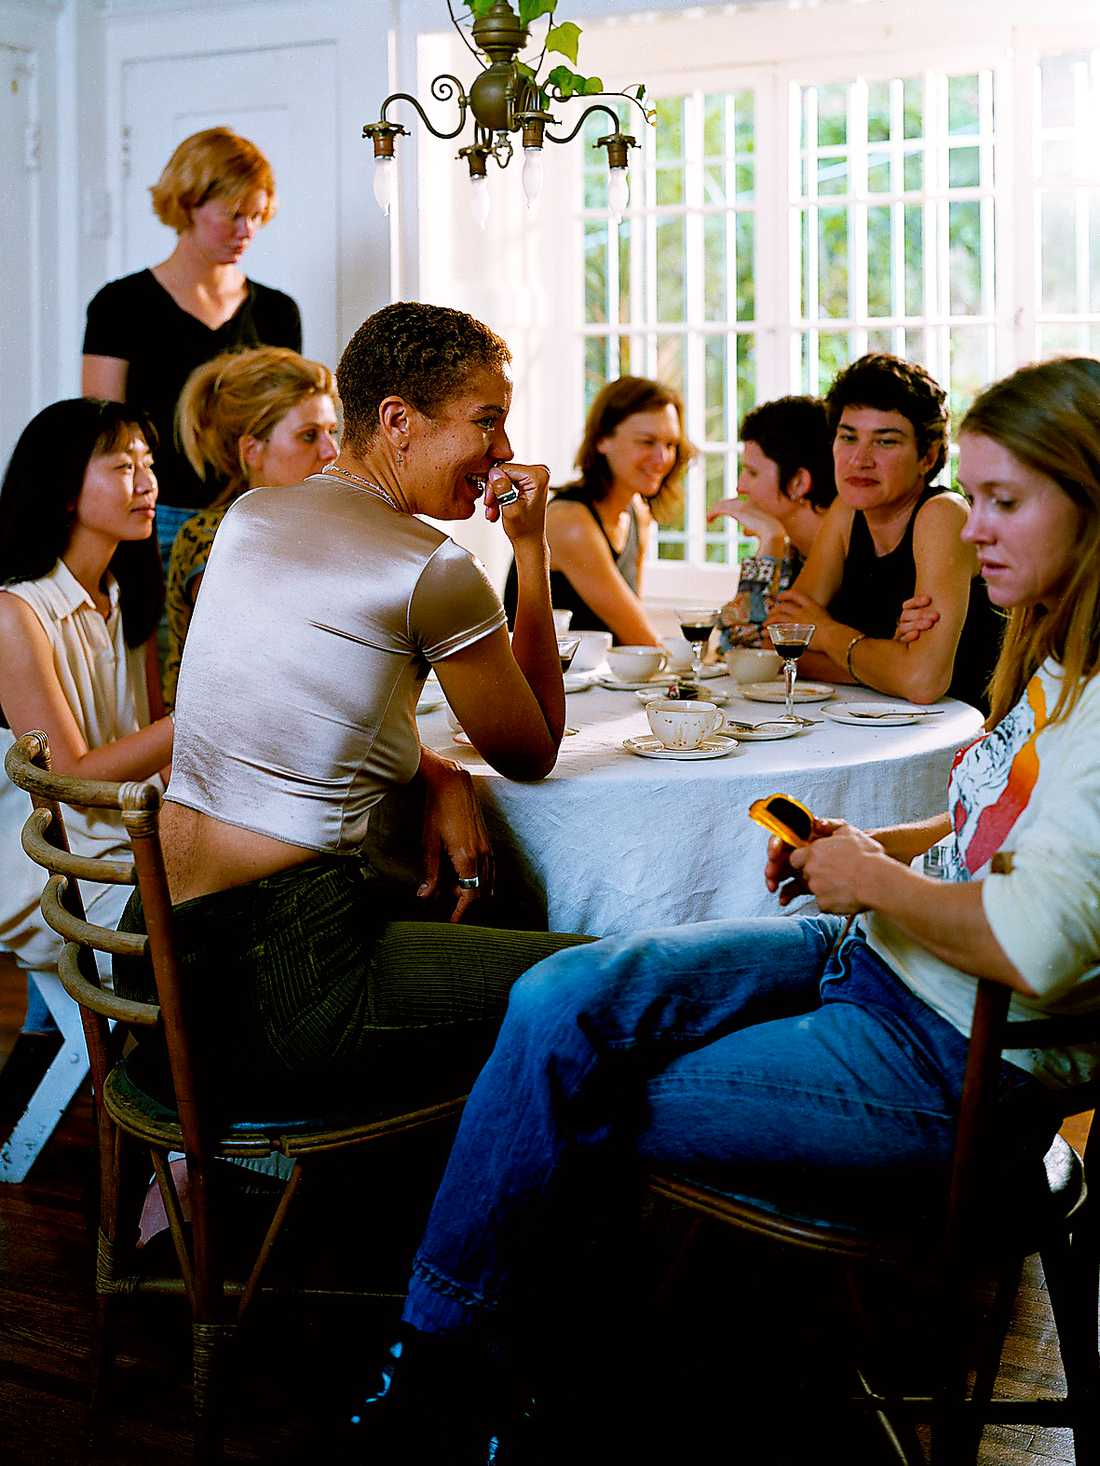 "Annica Karlsson Rixon, ""The artists' luncheon"", 1997. Foto: Annica Karlsson Rixon"